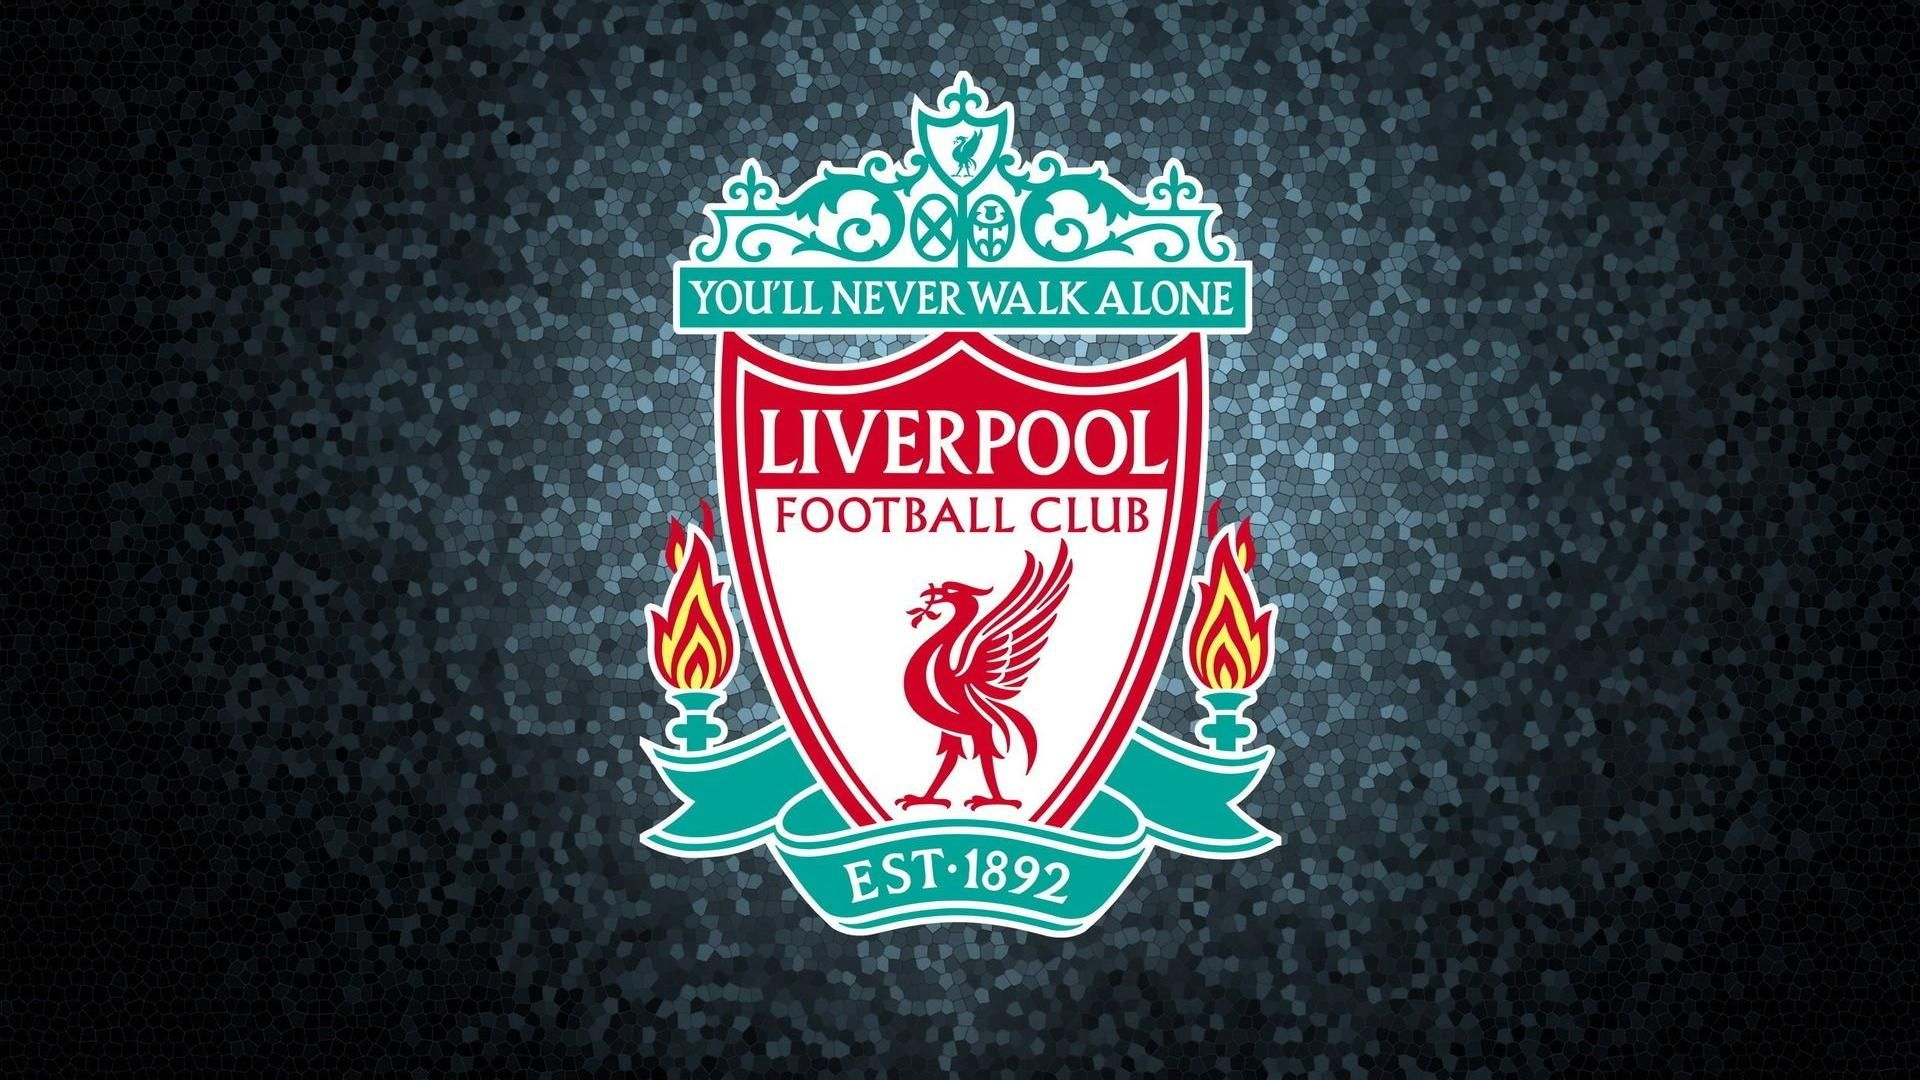 pin wallpaper liverpool awesome - photo #38